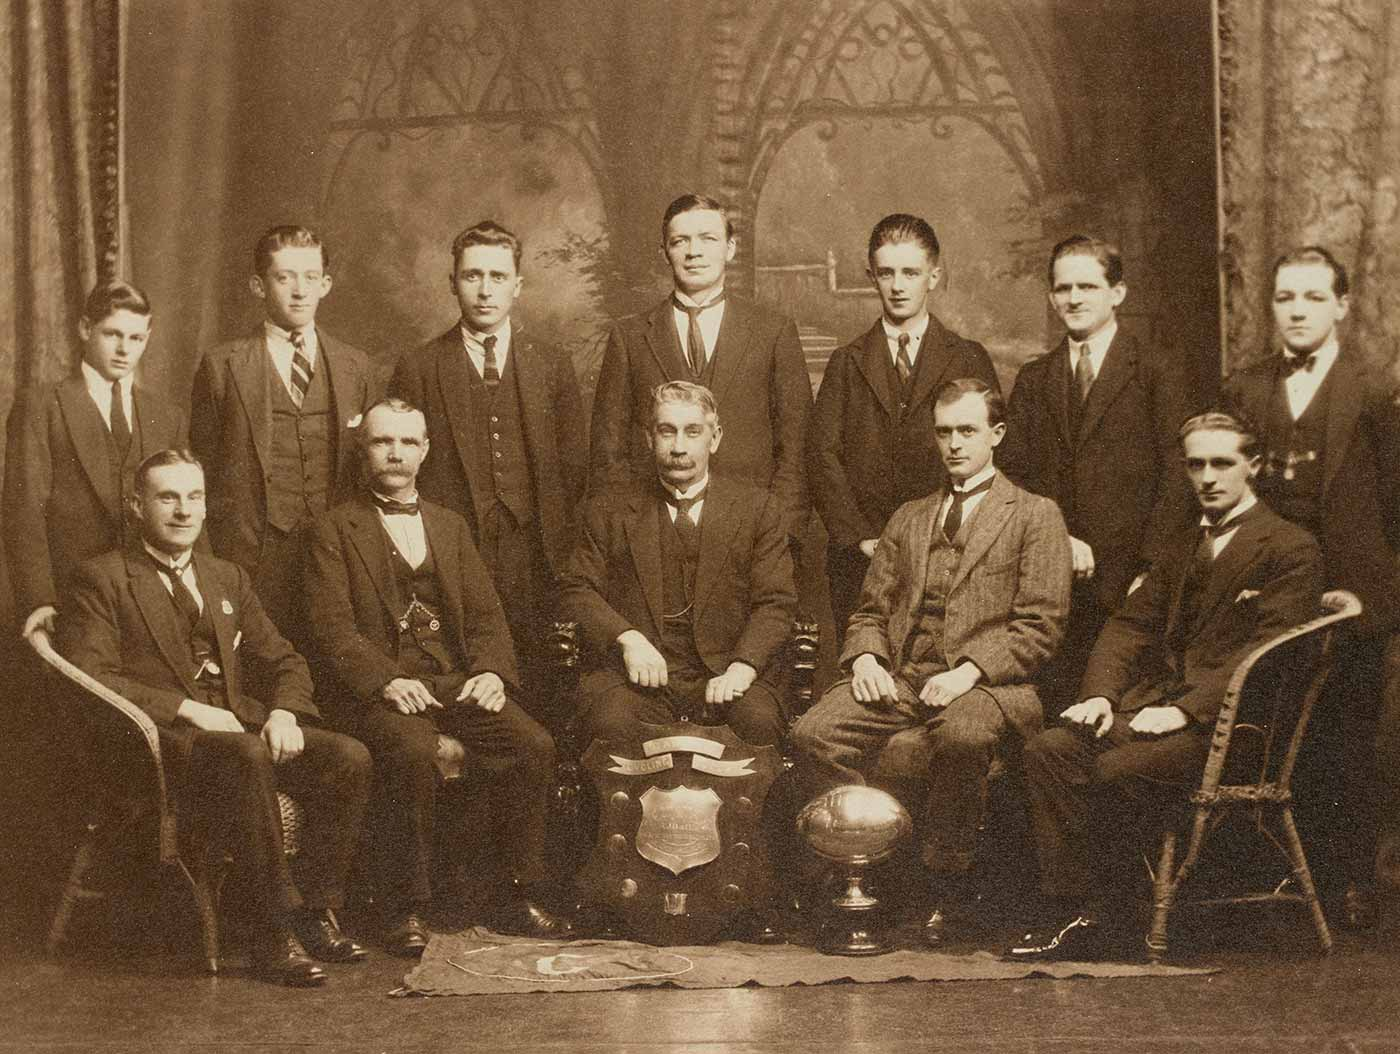 Members of the Footscray Rainbow Cycling Club with club trophy, 1925. - click to view larger image